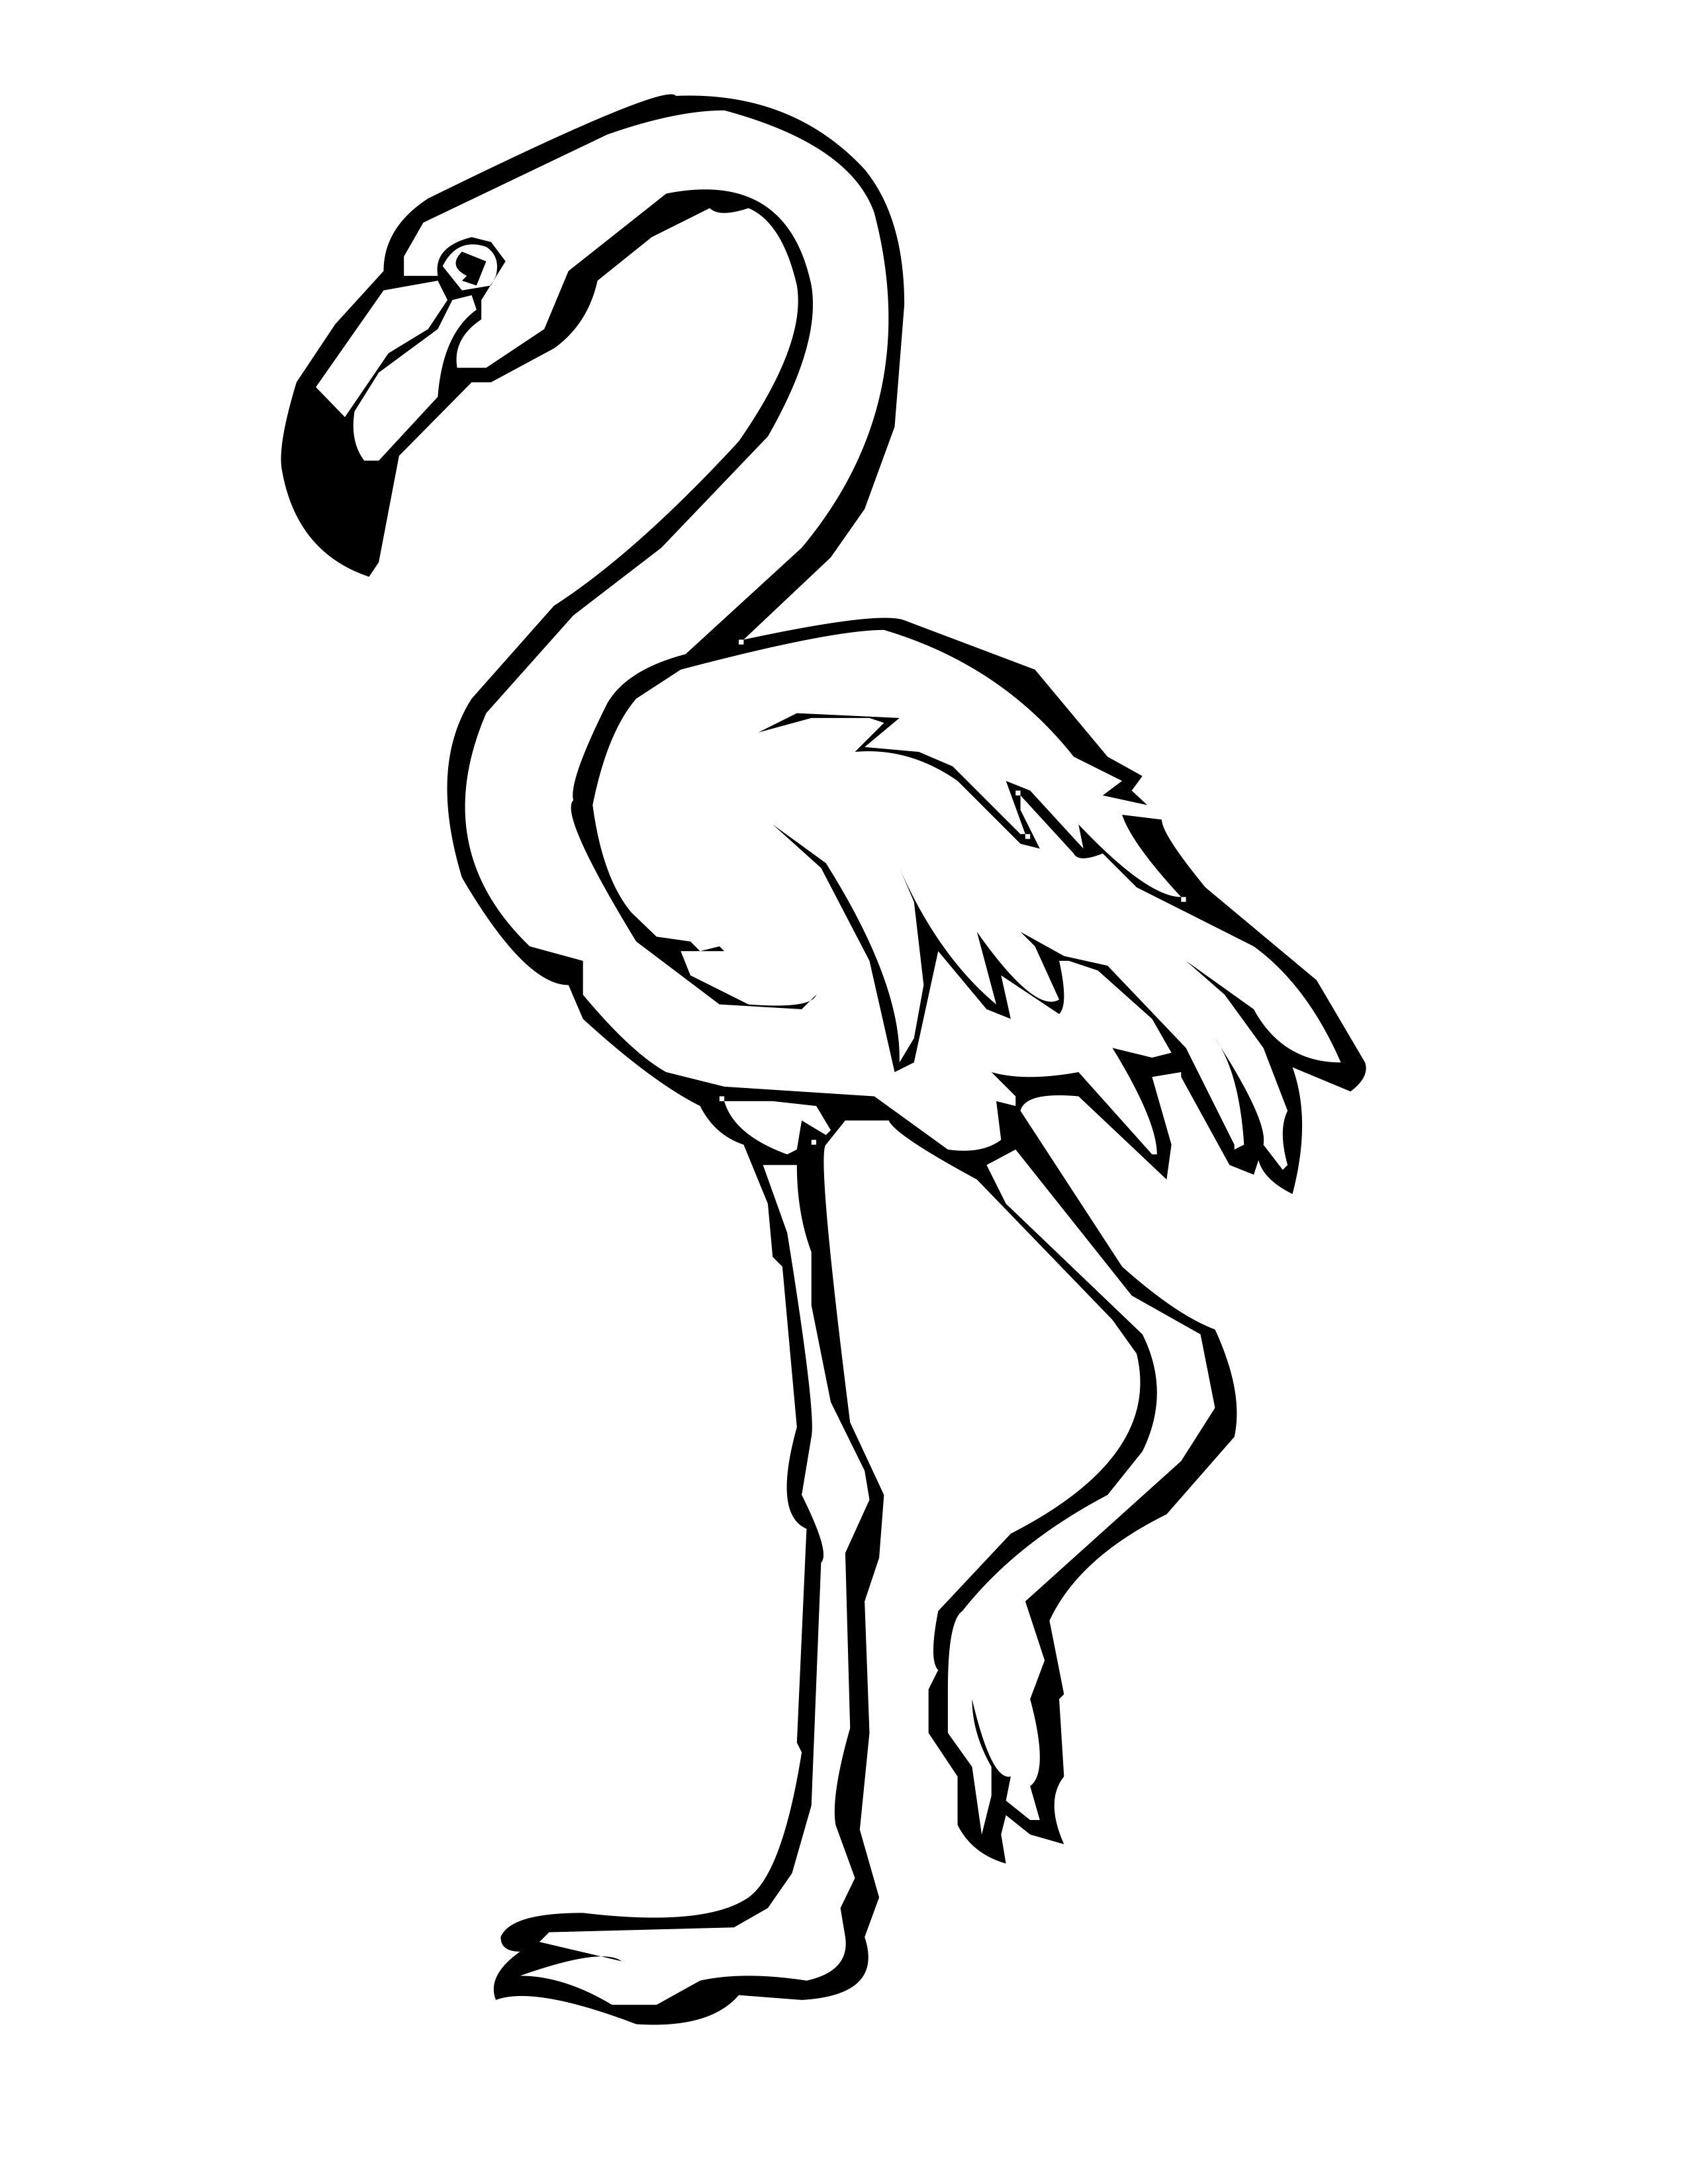 Coloring Page Base Flamingo Coloring Page Animal Coloring Pages